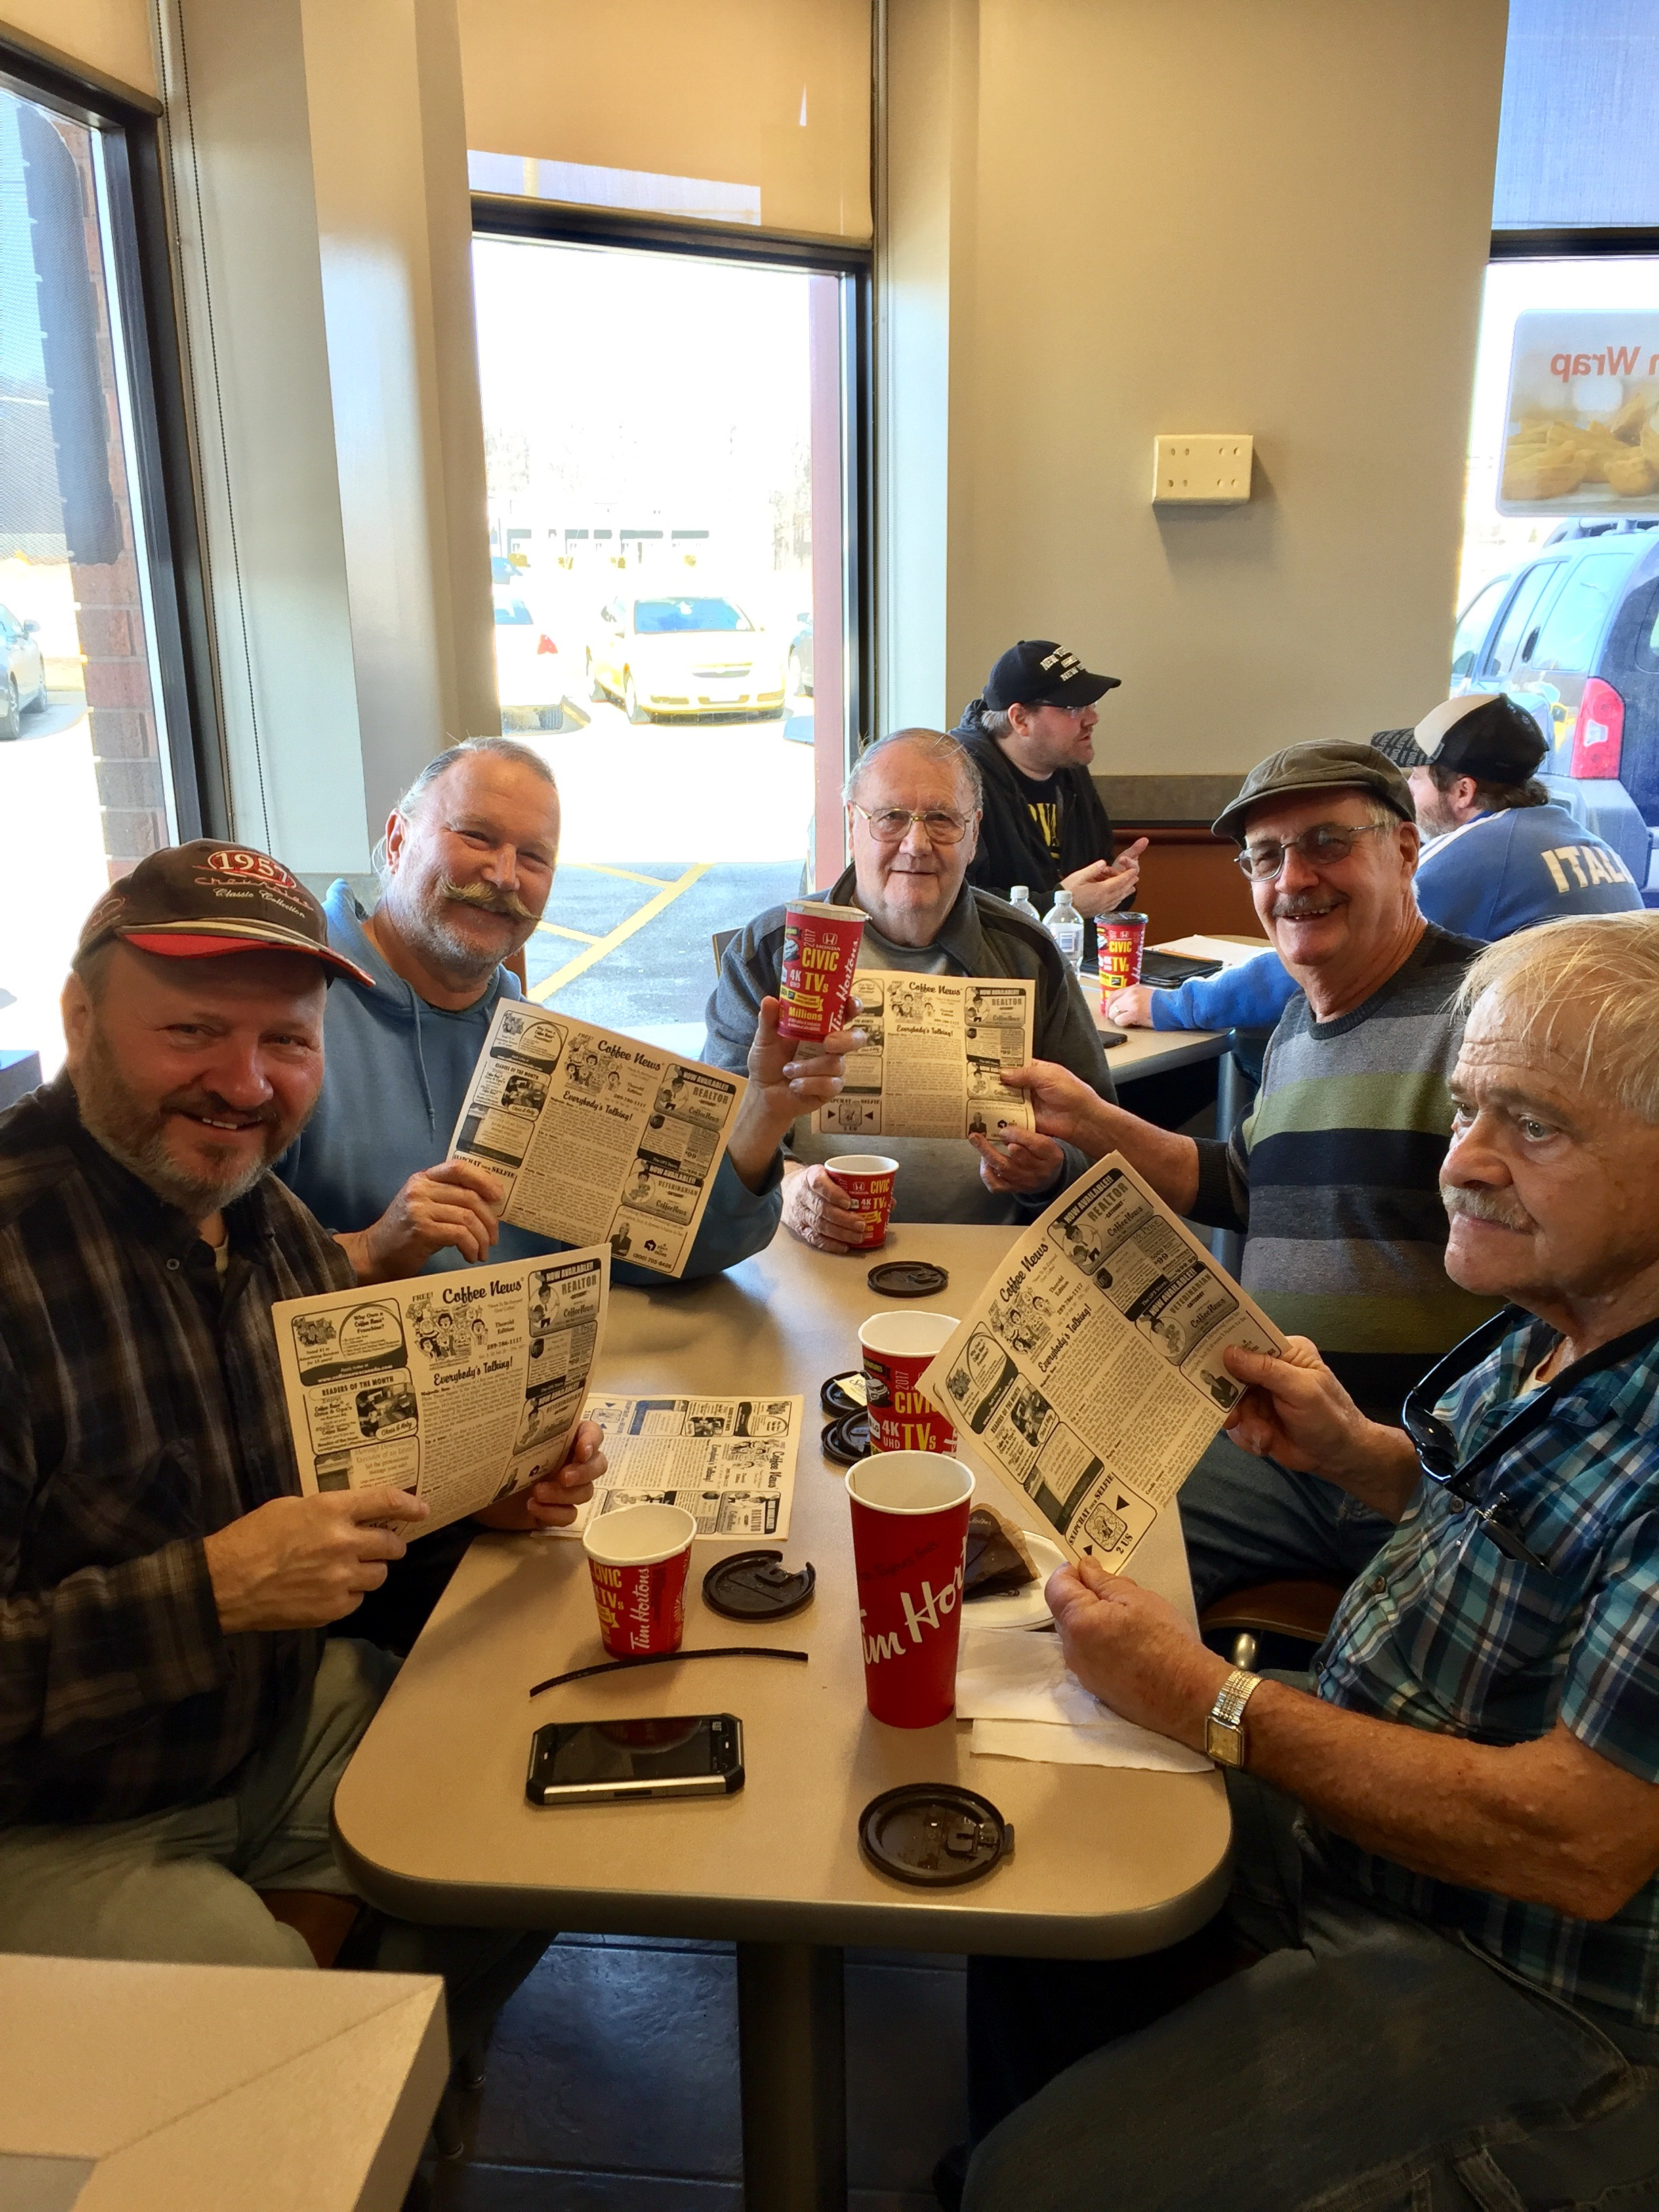 George mike bob smitty don at Timmies turners corners